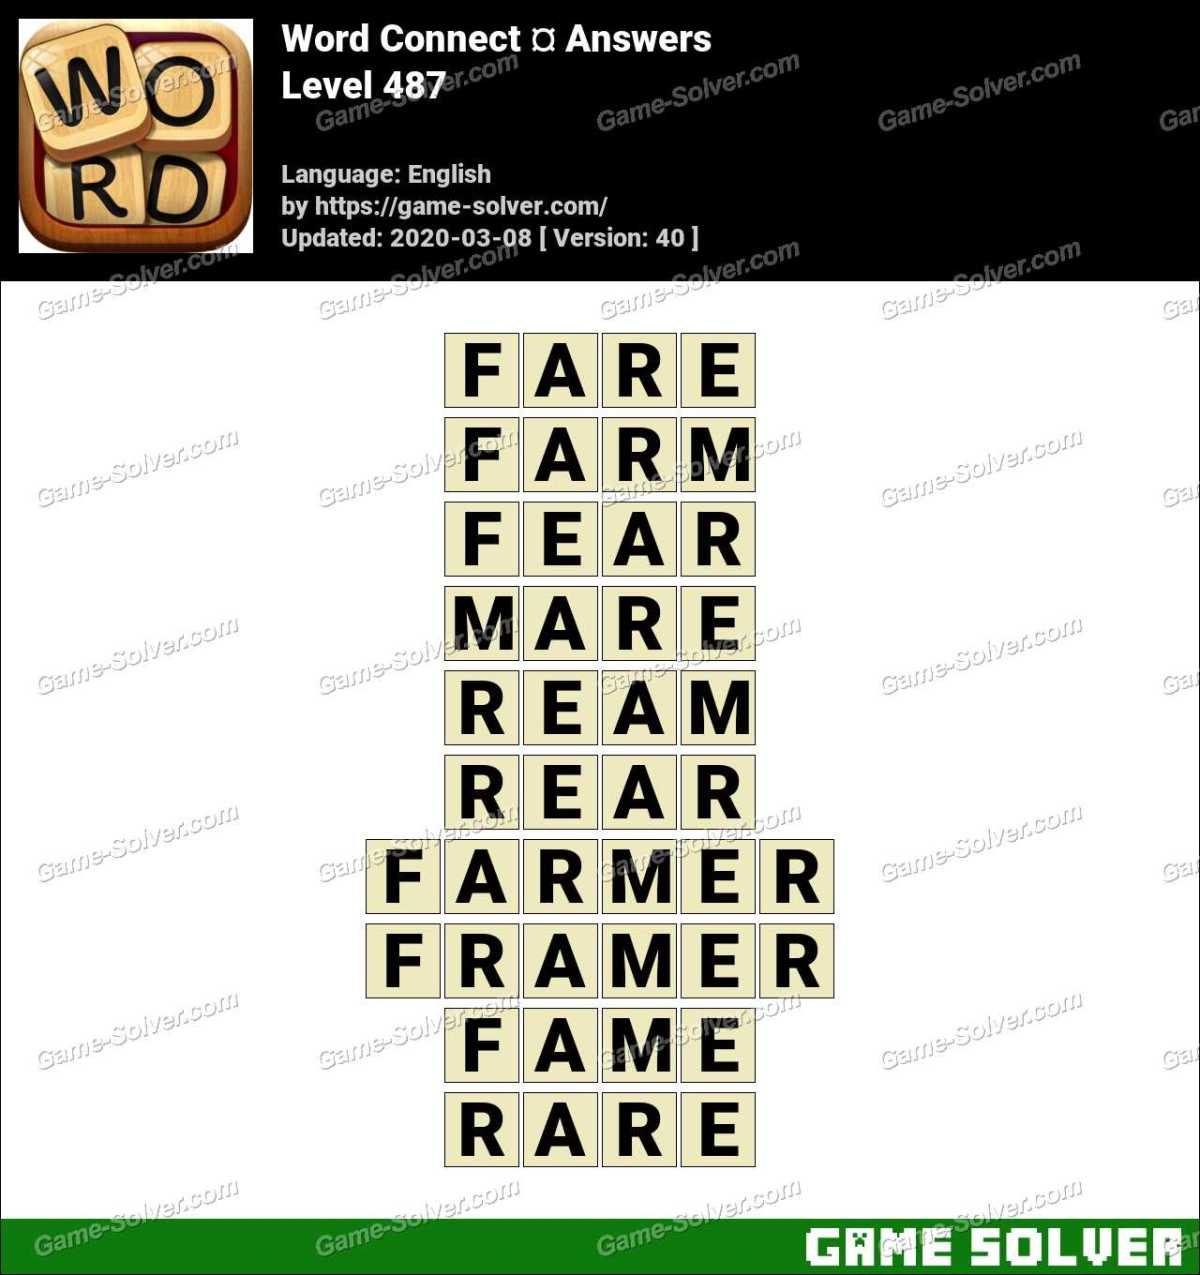 Word Connect Level 487 Answers